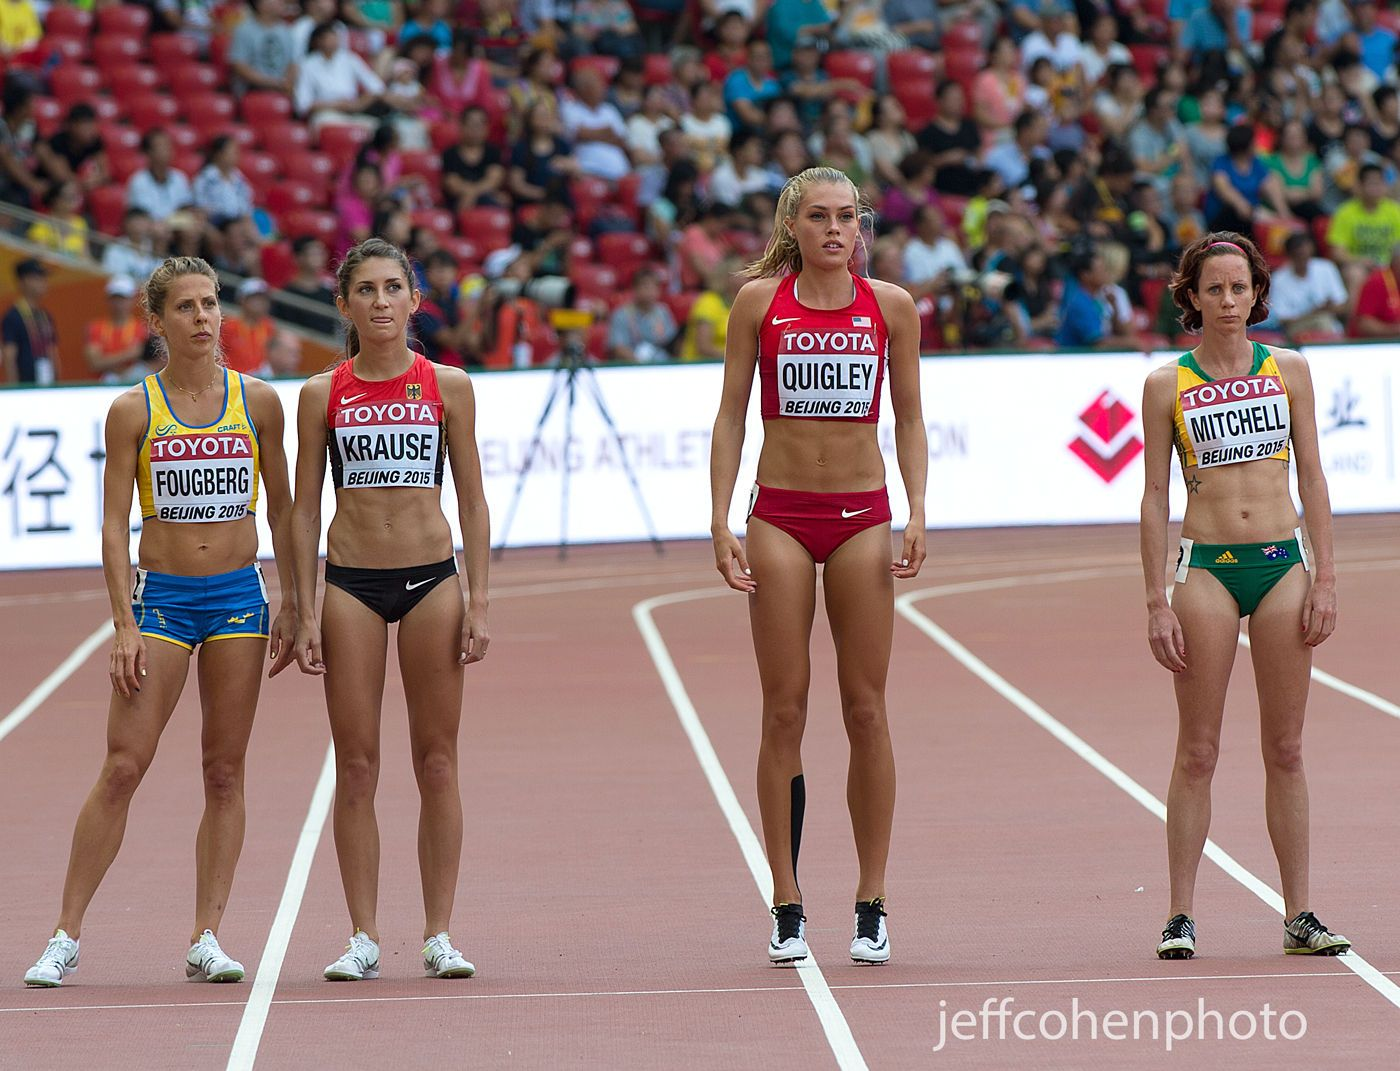 1beijing2015_day3_quigley_steeple_heat_jeff_cohen_photo_10610_web.jpg